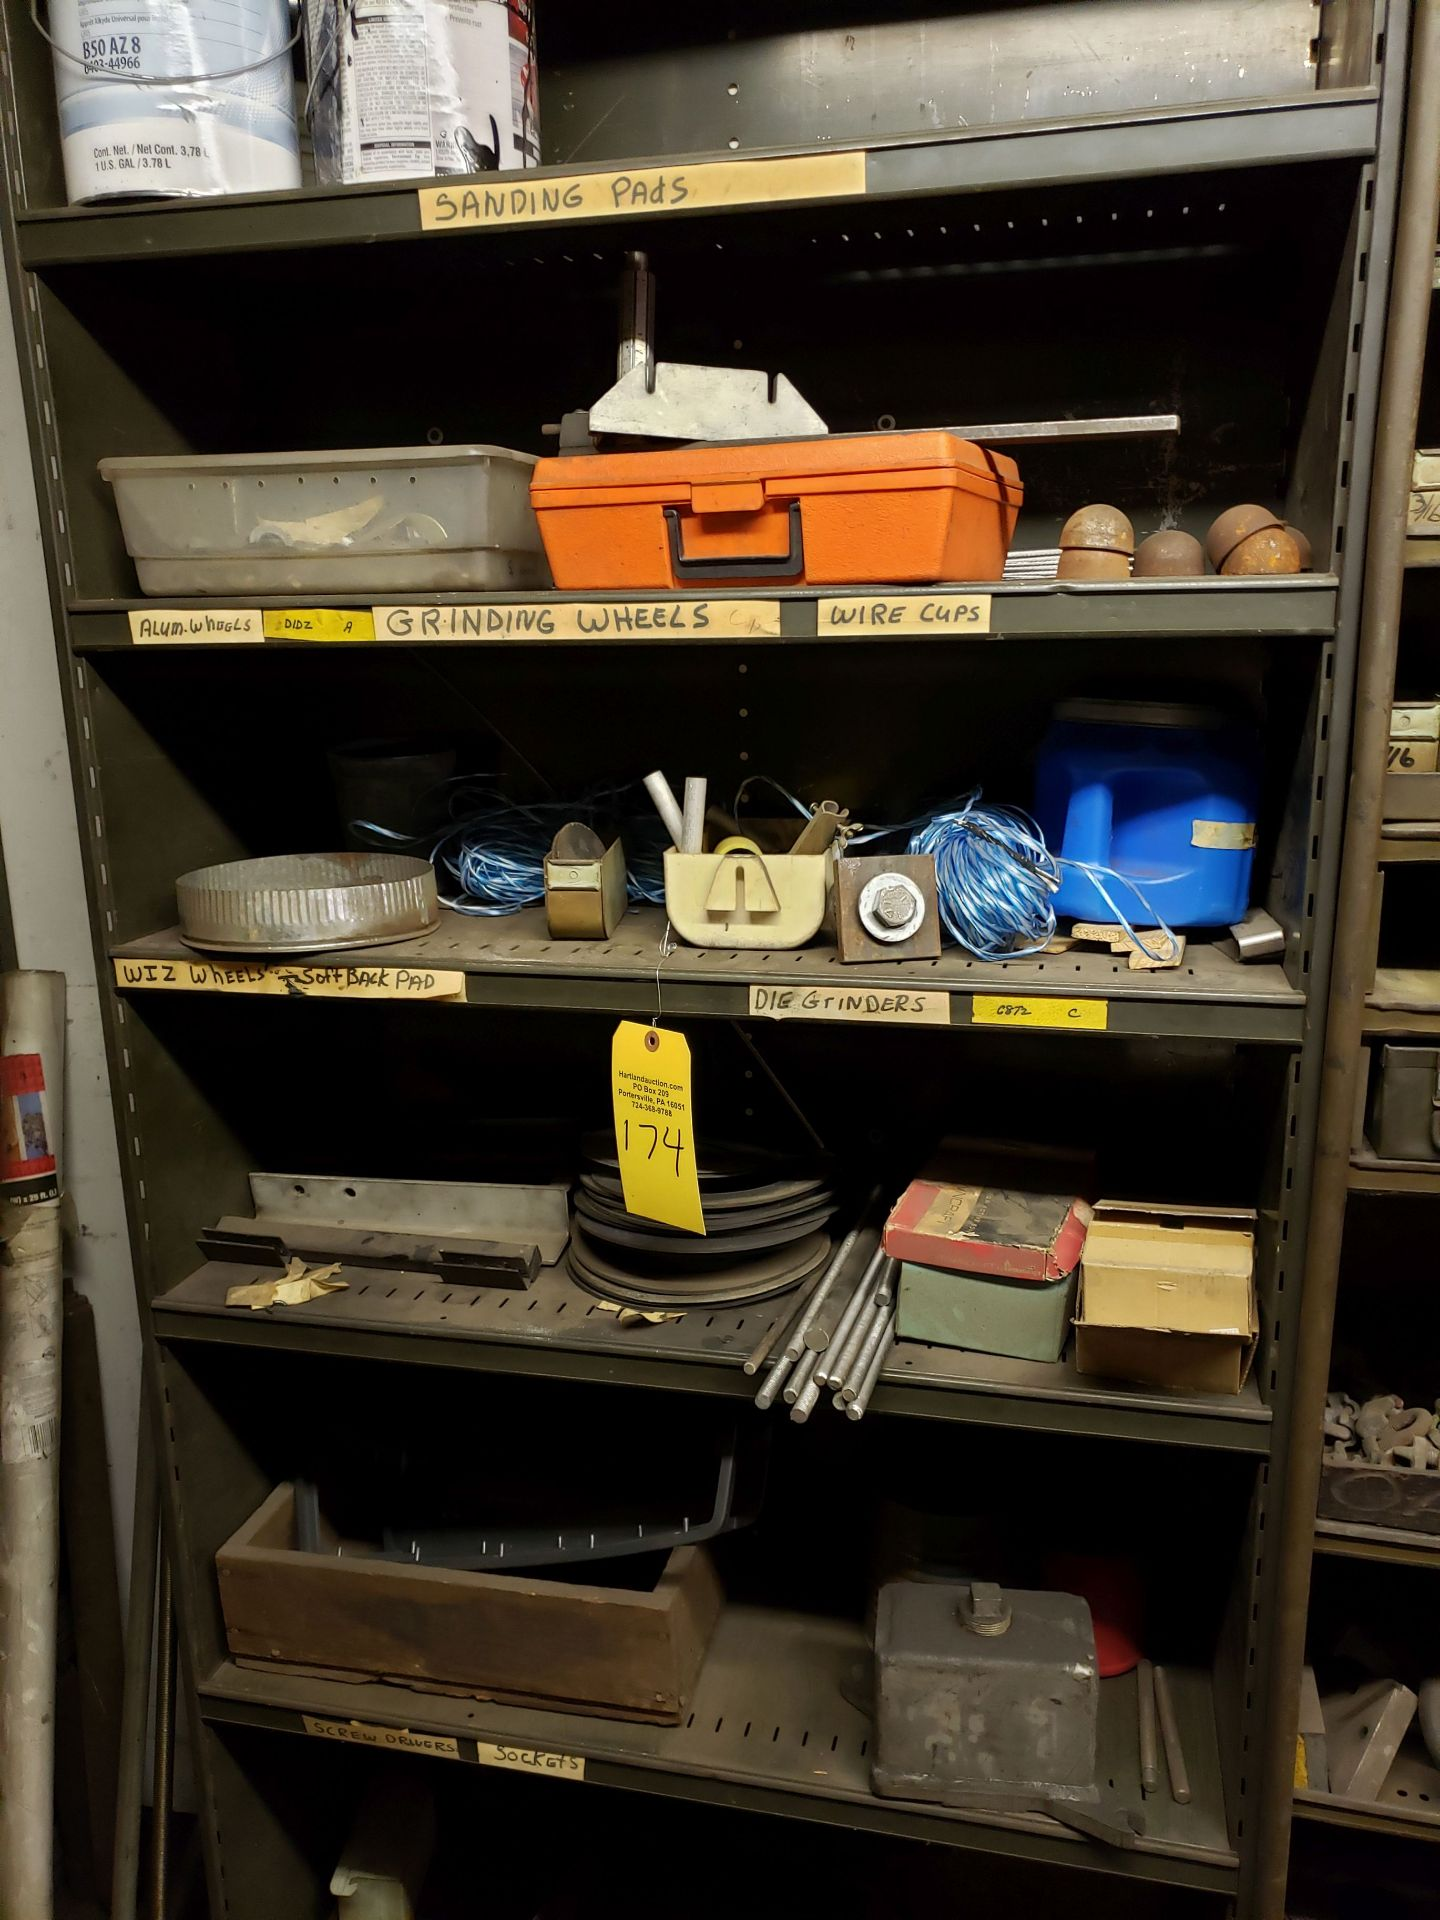 Lot 174 - BALANCE OF CONTENTS OF MAINTENANCE ROOM 9 SHELVES & CONTENTS - FASTENERS, ELECTRICAL, FITTINGS,